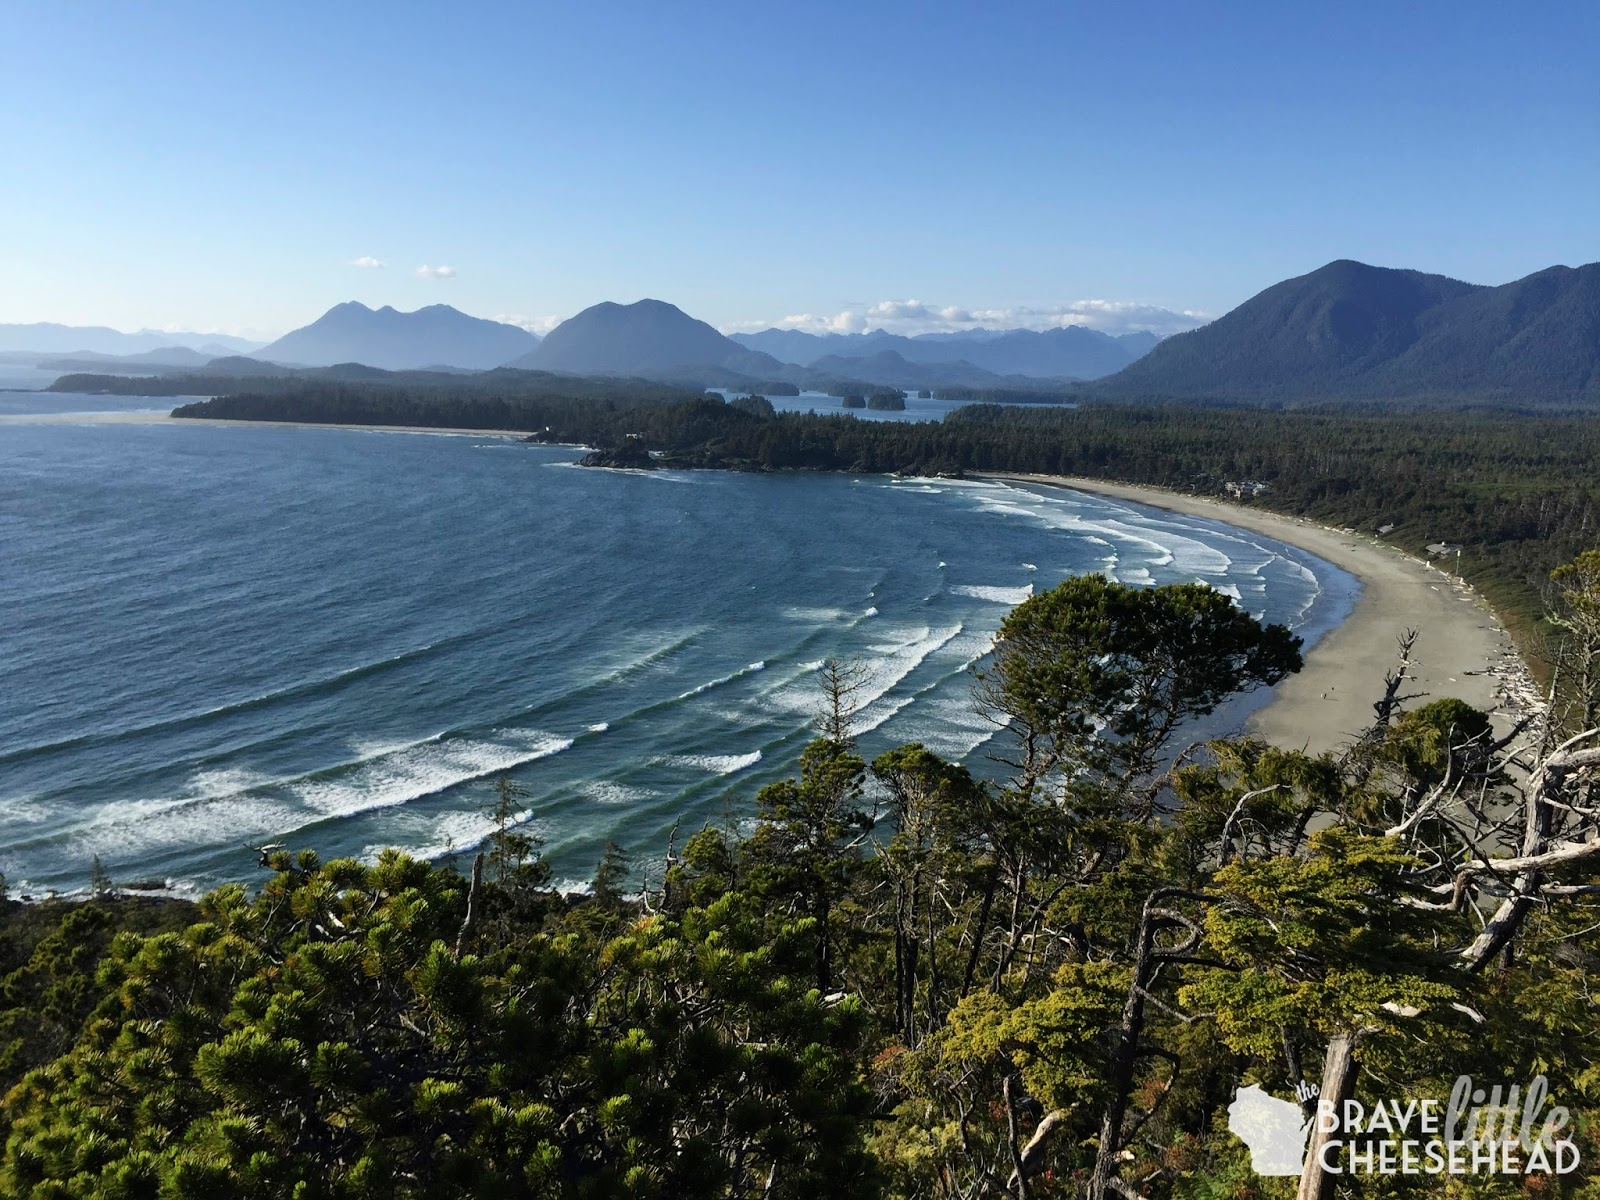 Seattle to Tofino | A Five-Day Road Trip from The Brave Little Cheesehead on bravelittlecheesehead.com